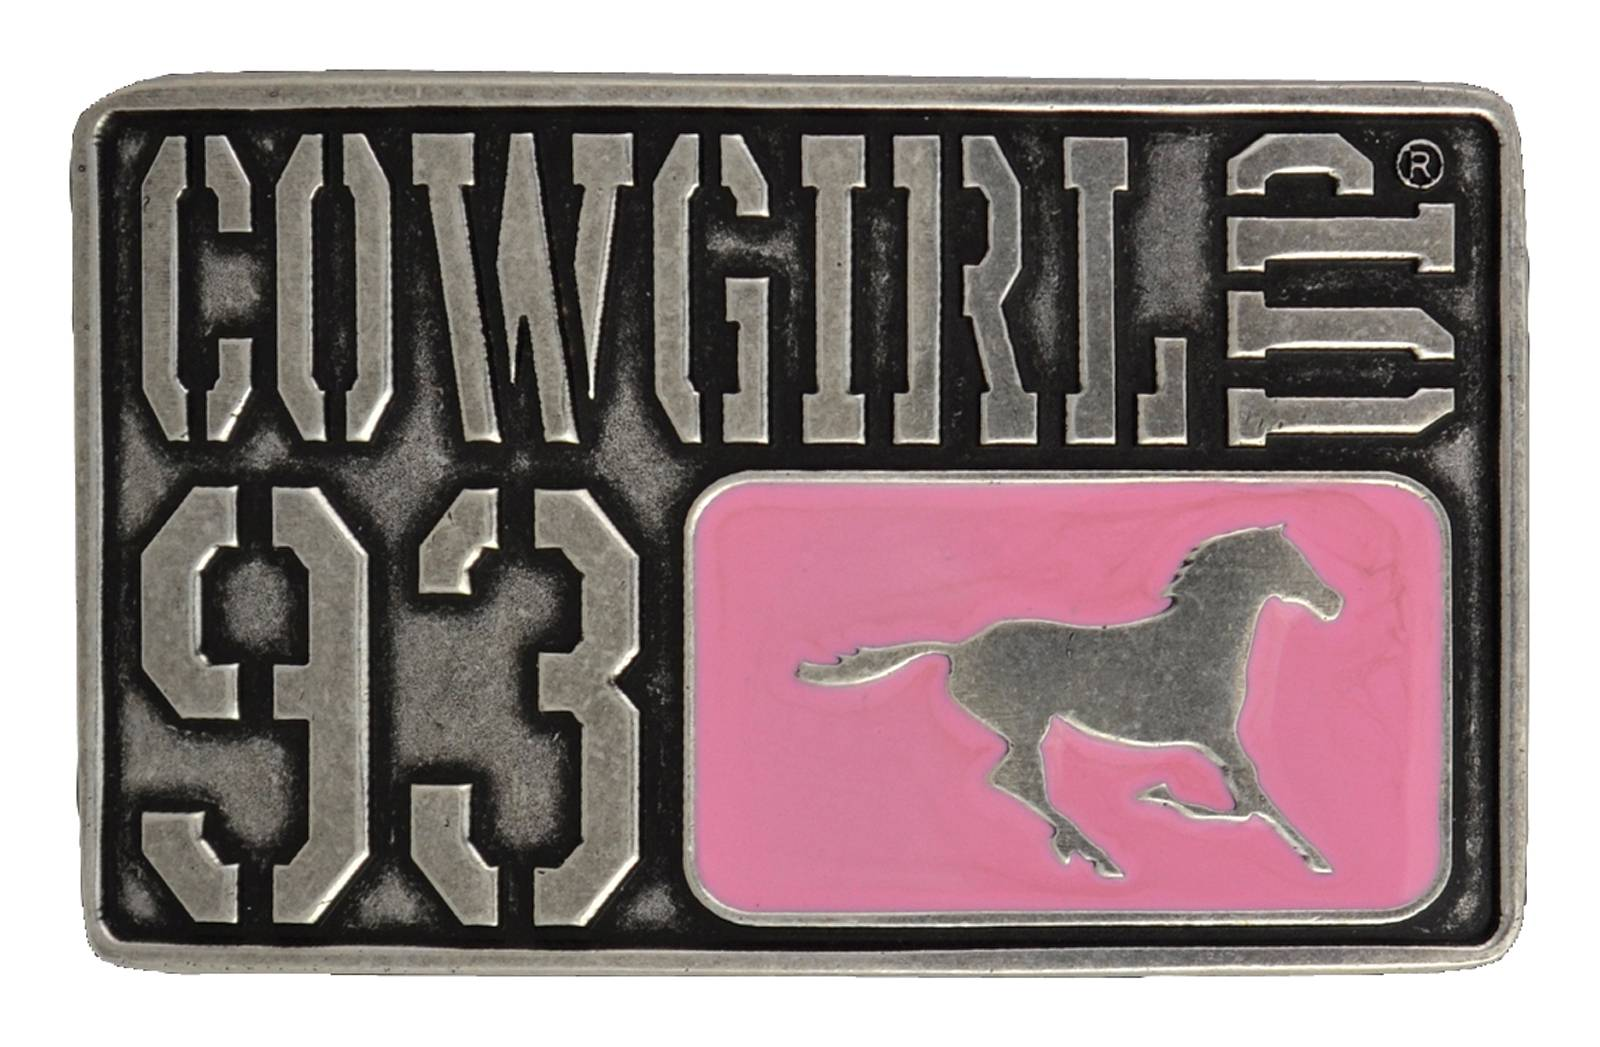 Montana Silversmiths License to Cowgirl Up Attitude Buckle